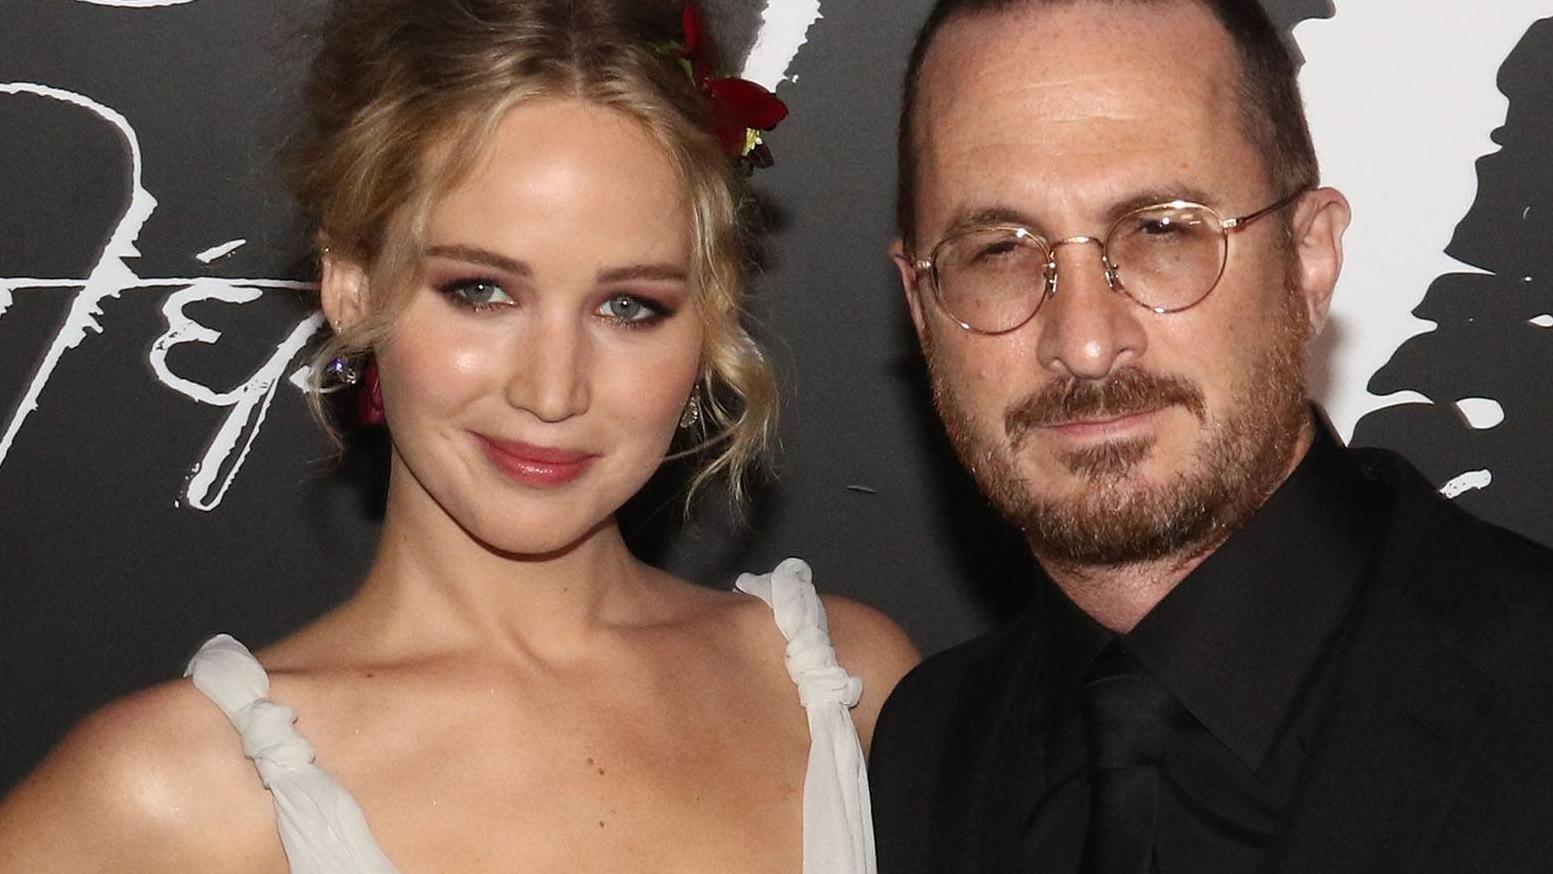 September 13, 2017 - New York, New York, U.S. - Actress JENNIFER LAWRENCE and director DARREN ARONOFSKY attend the New York premiere of Mother! held at Radio City Music Hall. New York U.S. PUBLICATIONxINxGERxSUIxAUTxONLY - ZUMAk03_ 20170913_zaf_k03_0